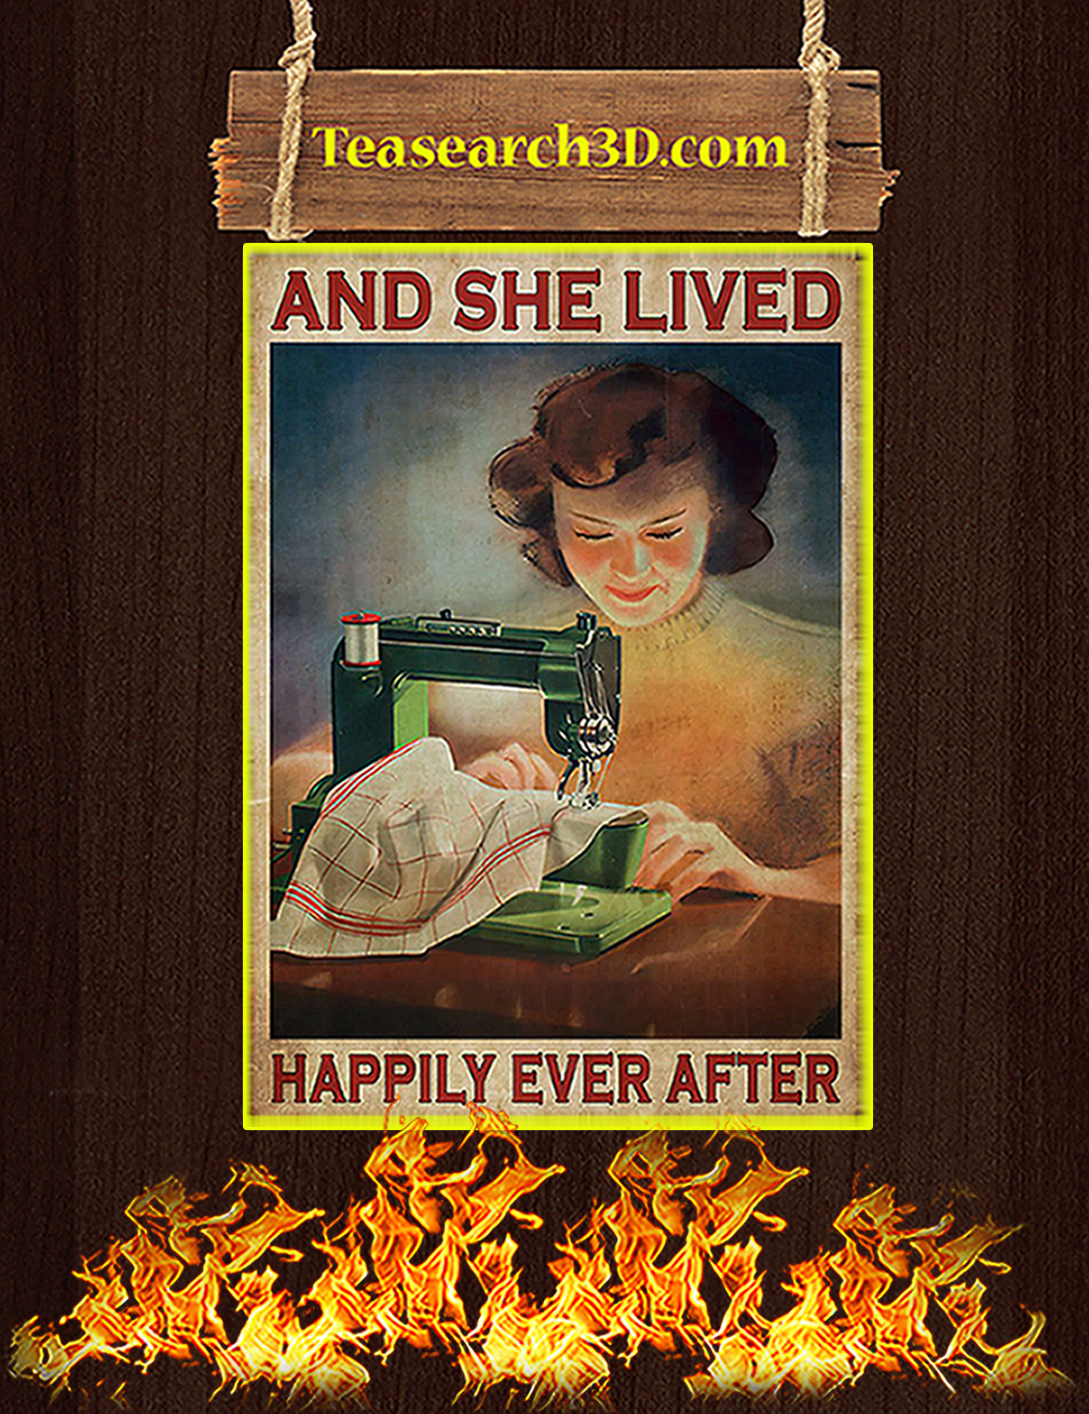 Girl sewing and she lived happily ever after poster A2